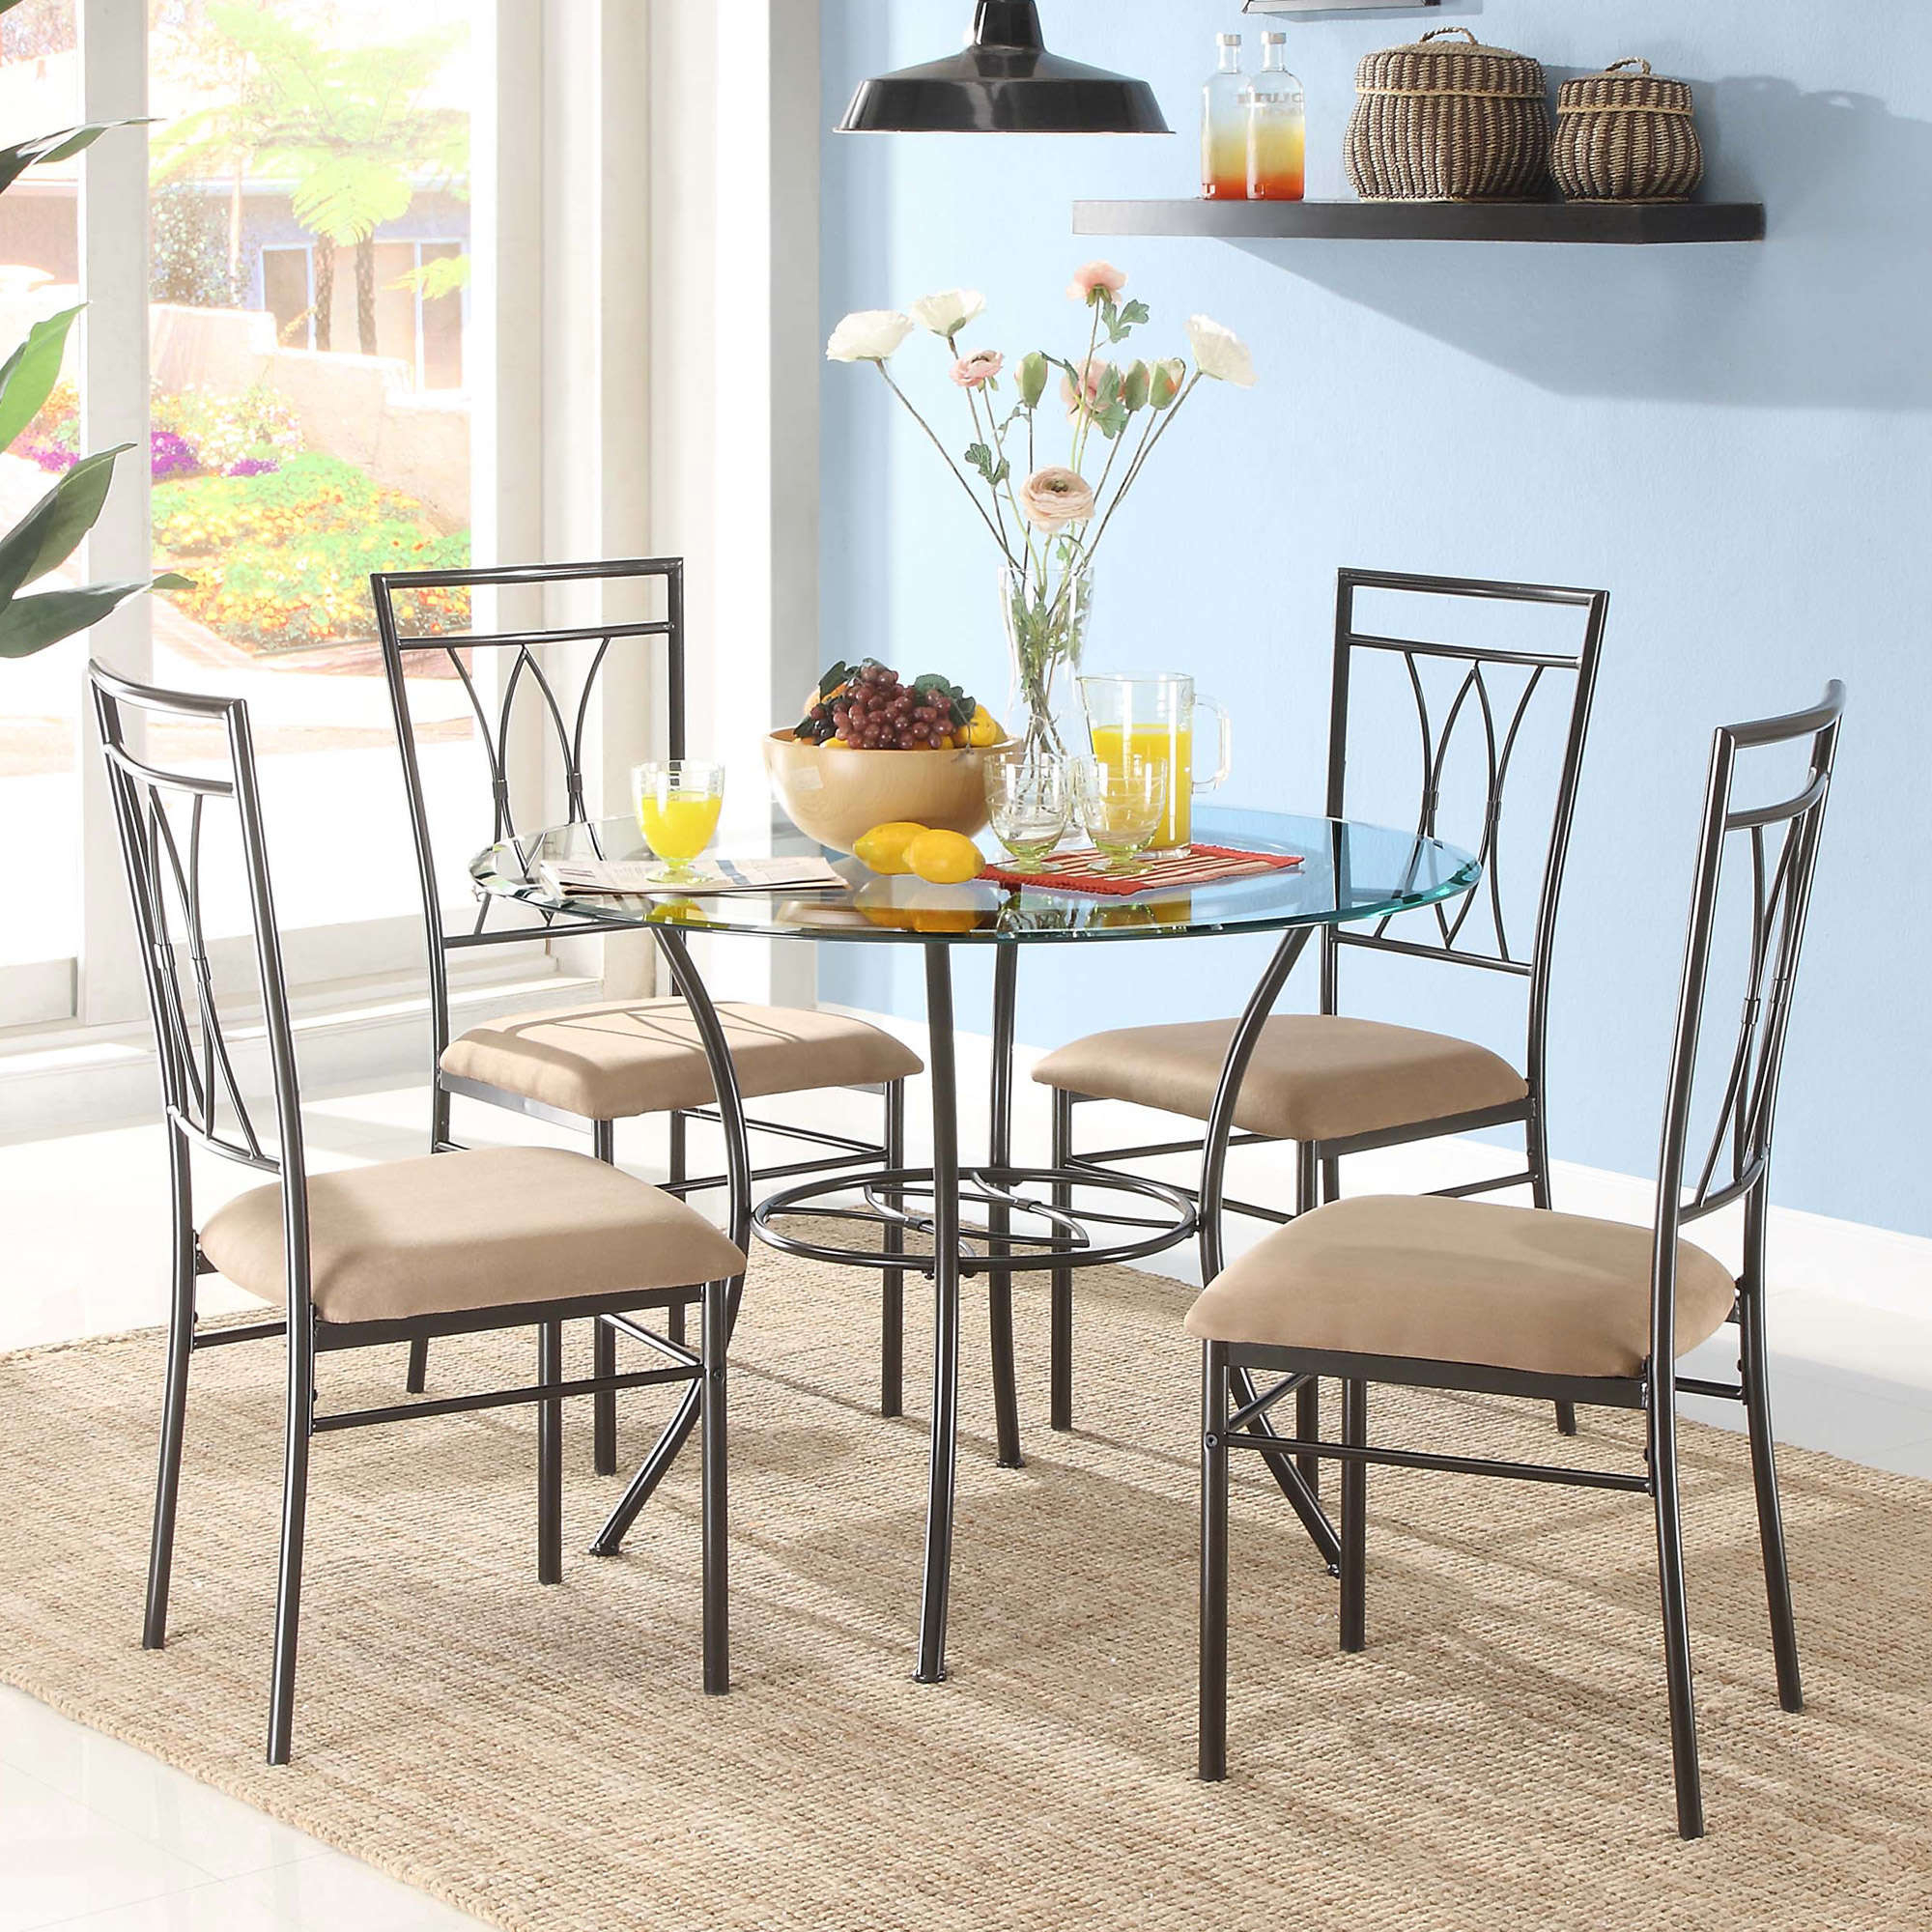 Kitchen & Dining Furniture – Walmart With Most Up To Date North Reading 5 Piece Dining Table Sets (View 10 of 20)